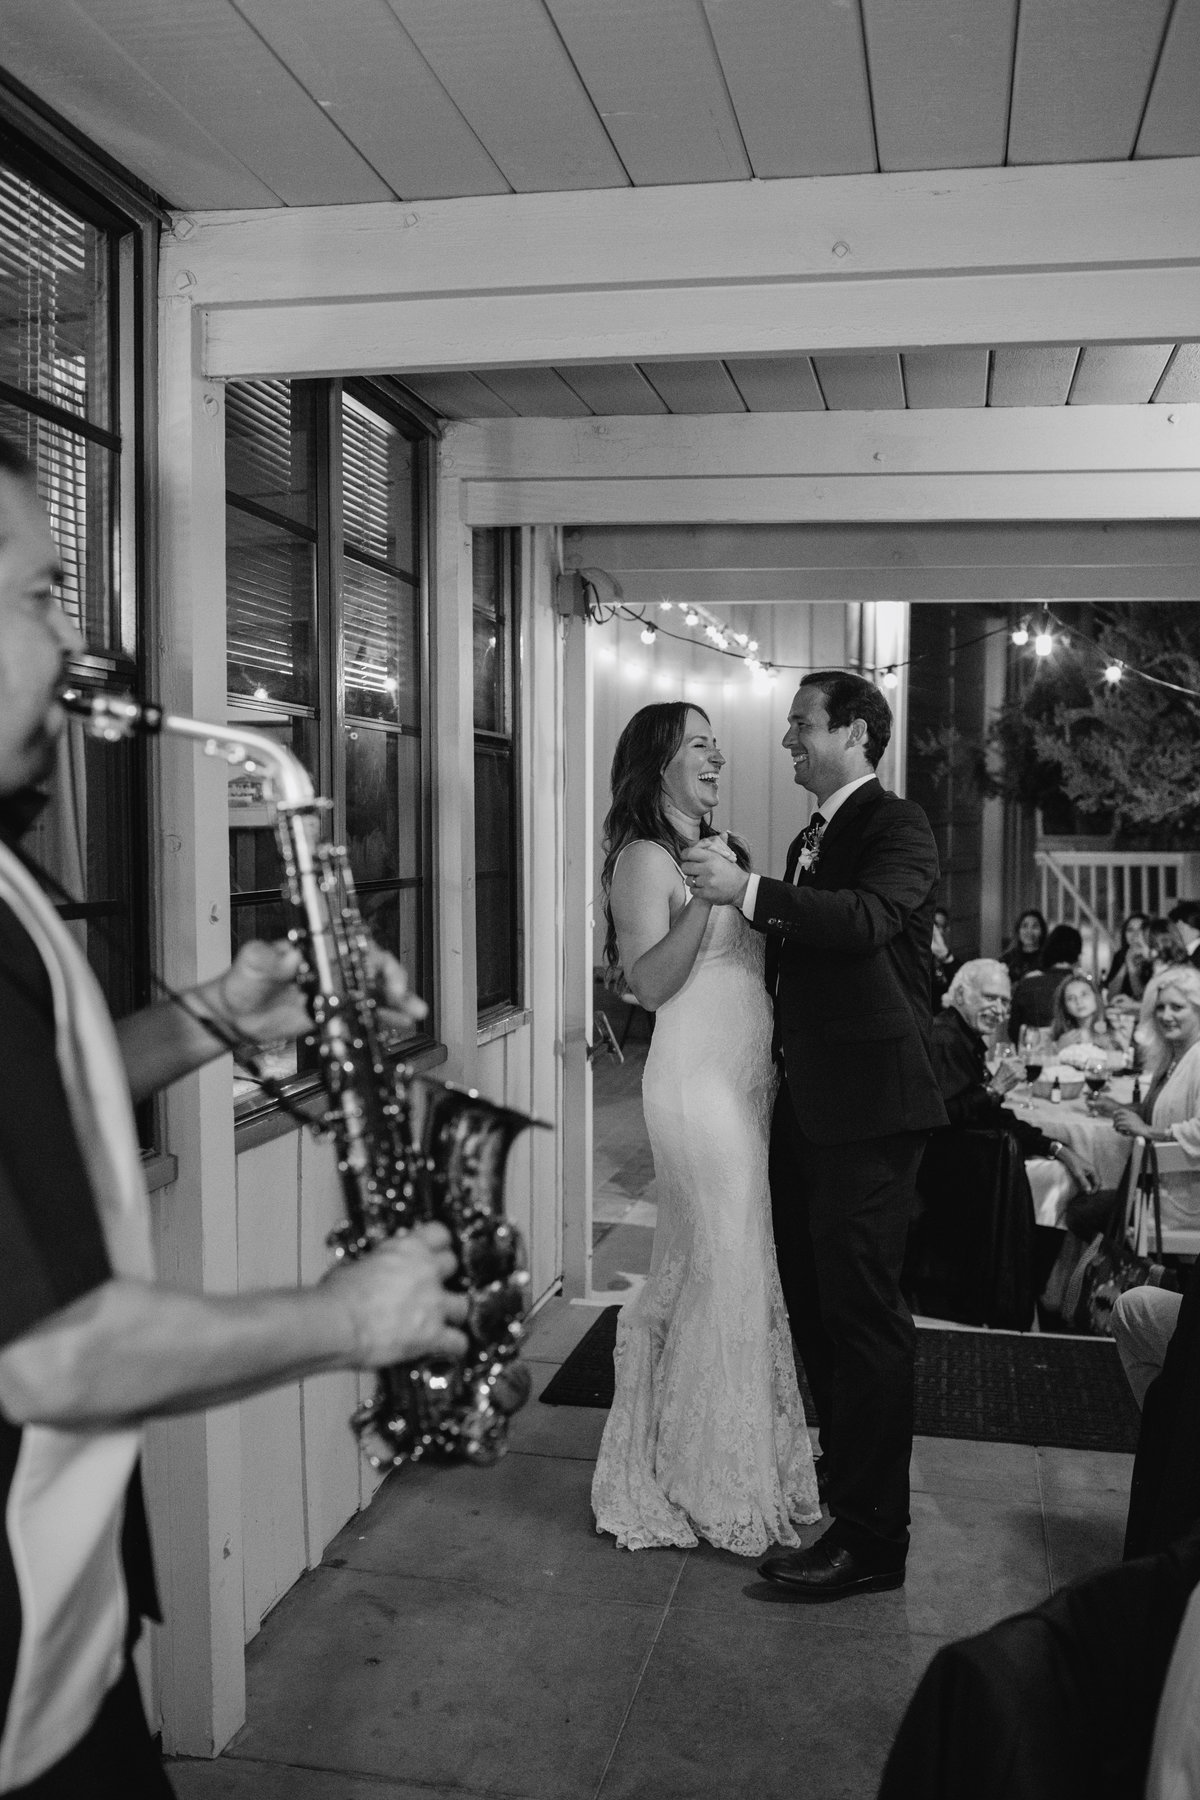 Katherine_beth_photography_San_diego_wedding_photographer_san_diego_wedding_ZLAC_Wedding_001